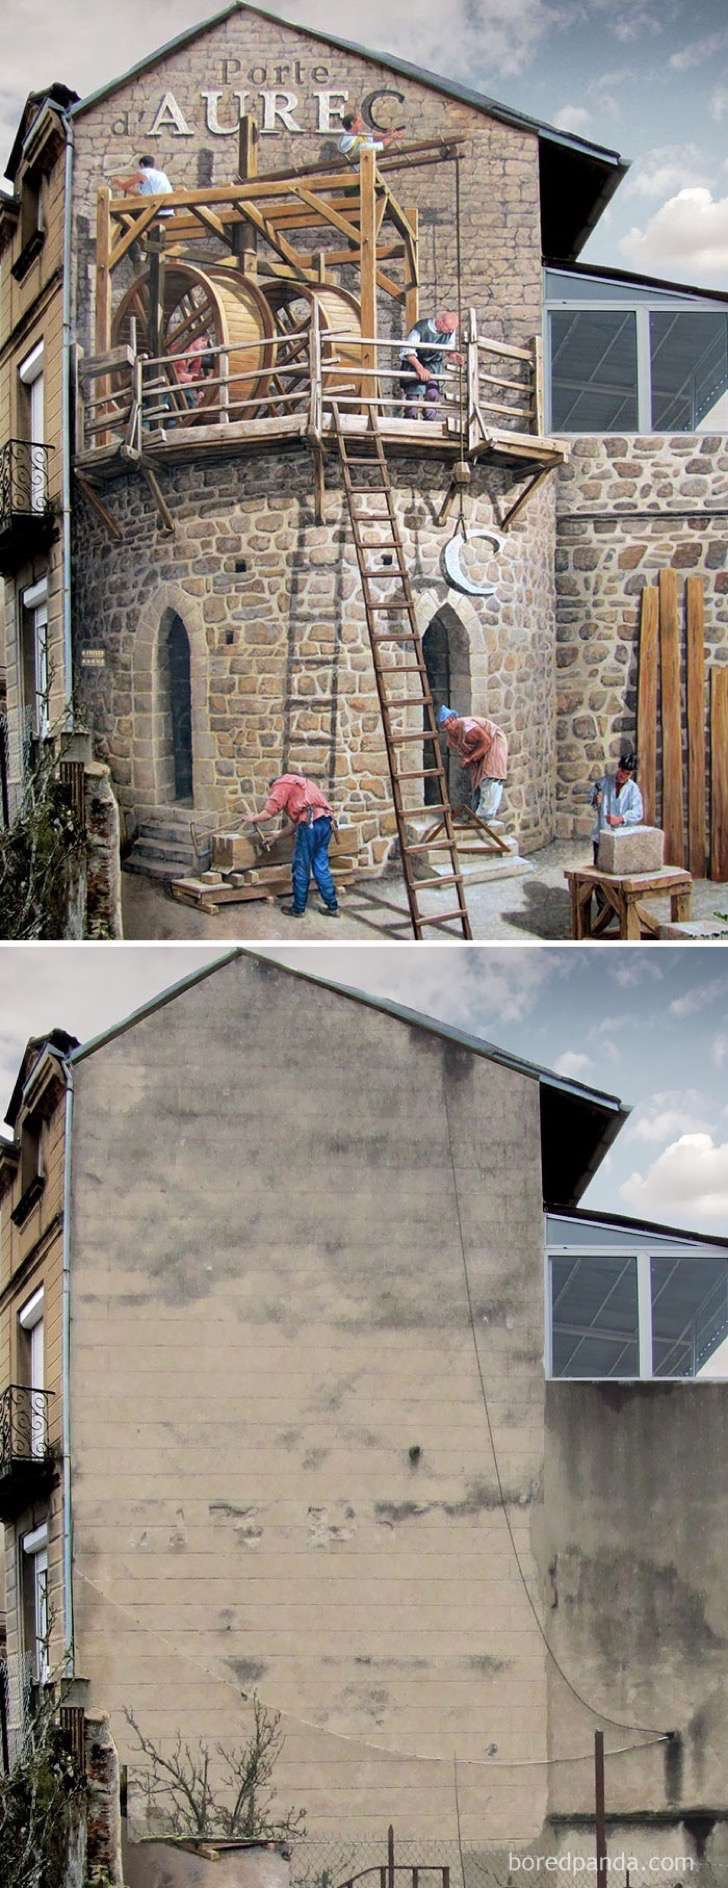 before-after-street-art-boring-wall-transformation-75-580f658abf46a__700-2